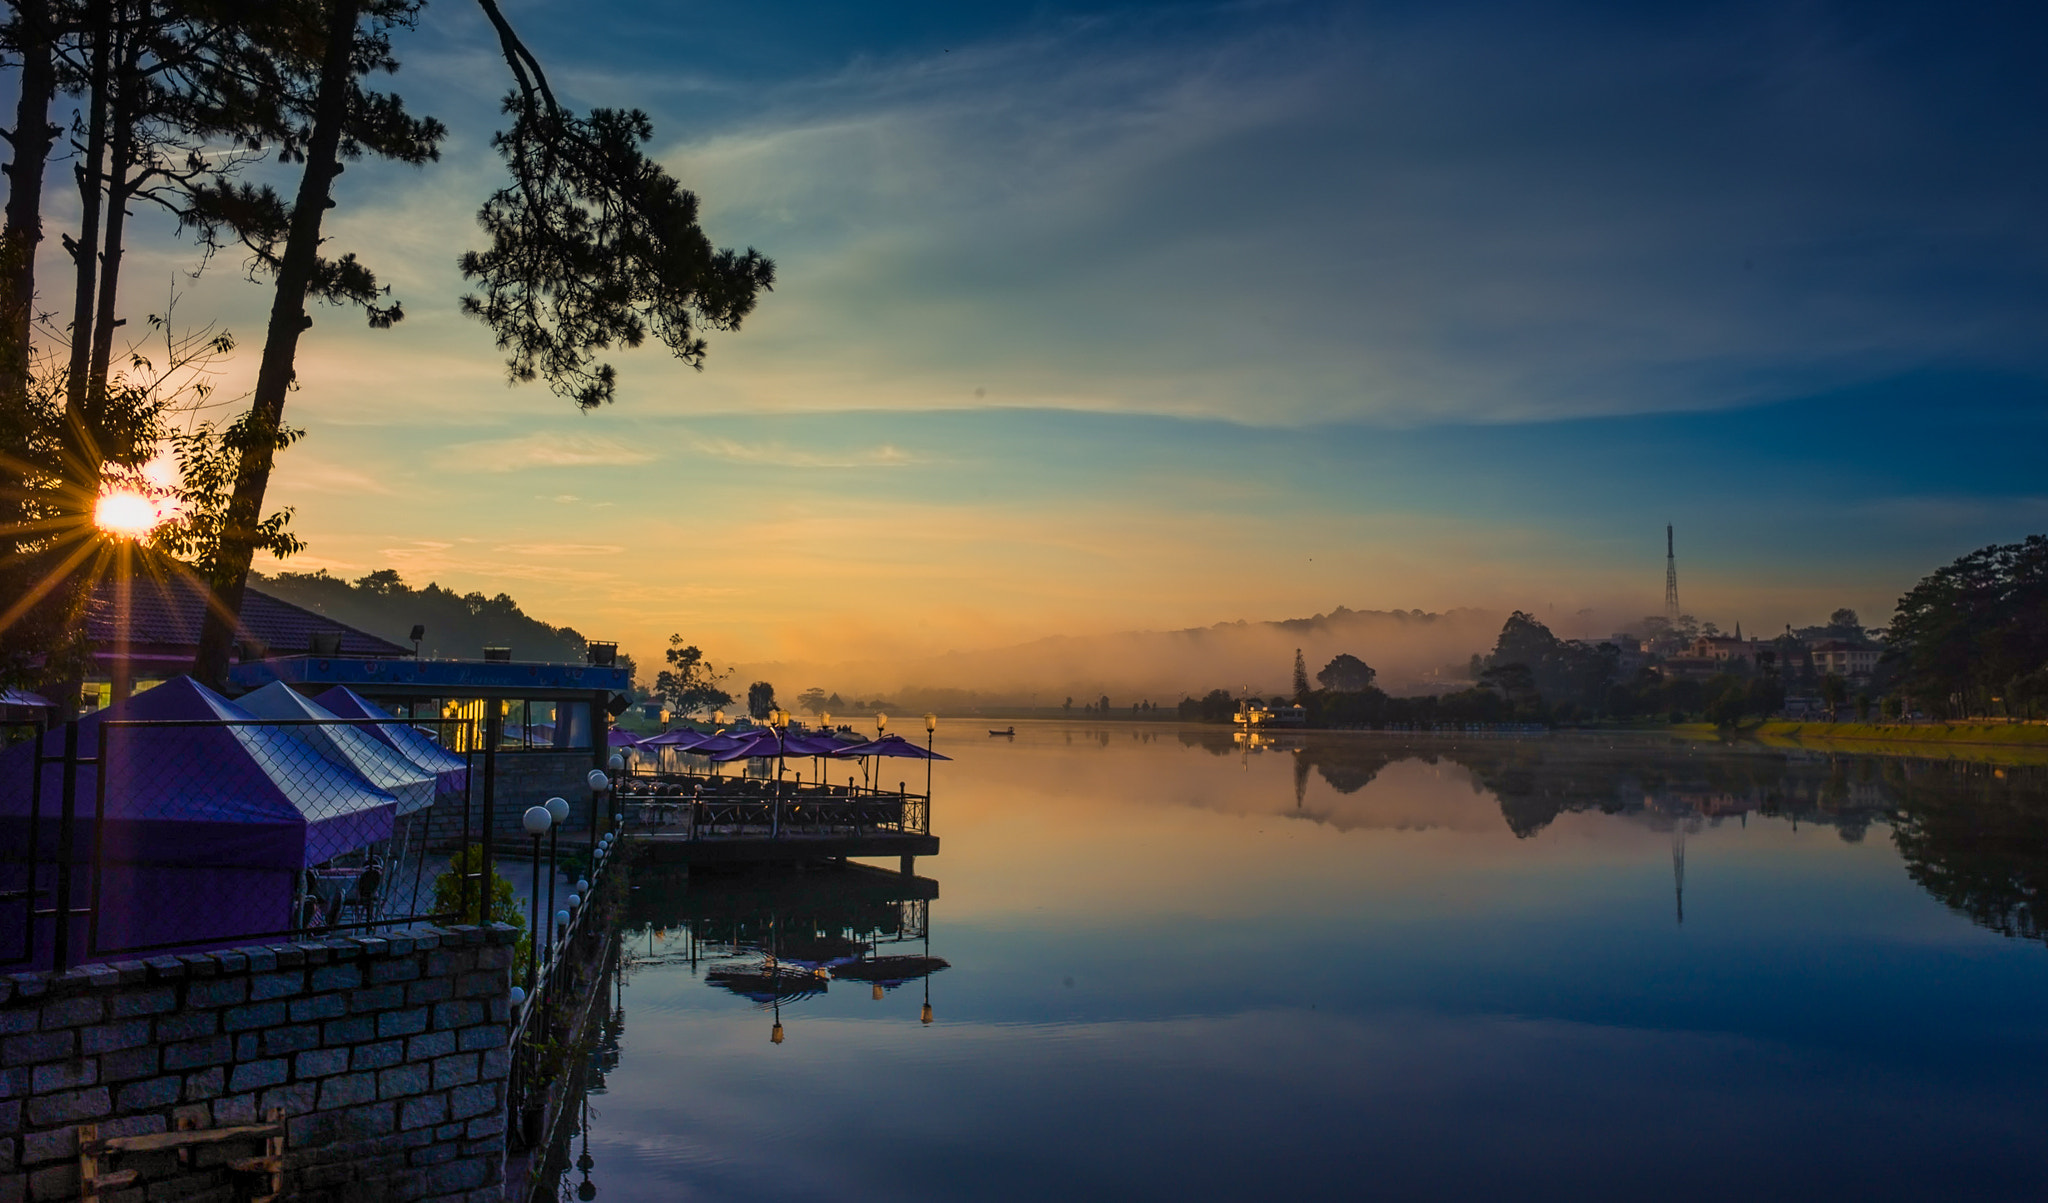 Photograph Summer Morning.  by love leica on 500px